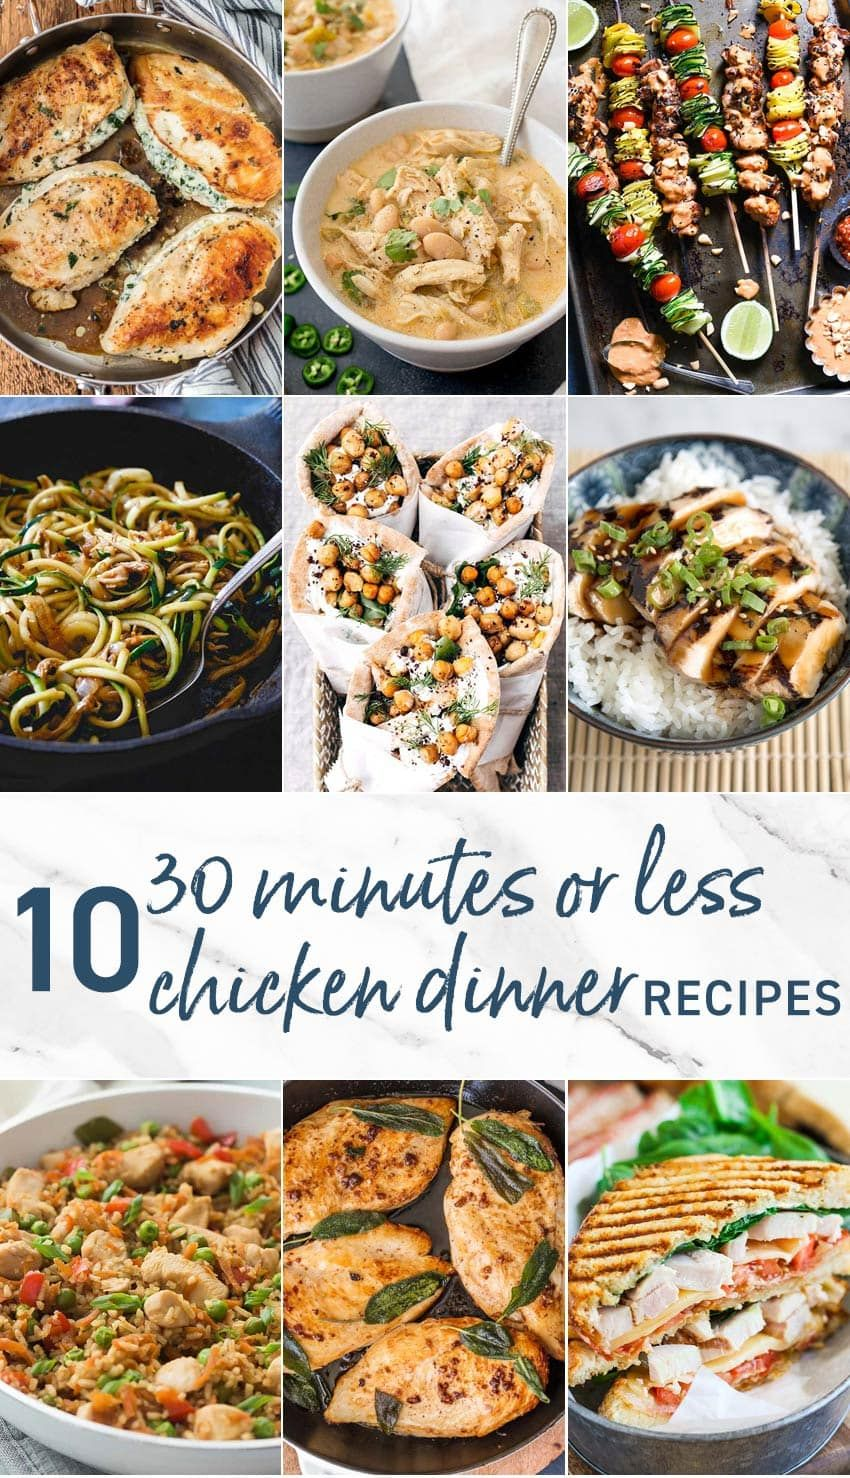 10 30 Minutes Or Less Chicken Dinners Chicken Dinner Best Dinner Recipes Night Dinner Recipes